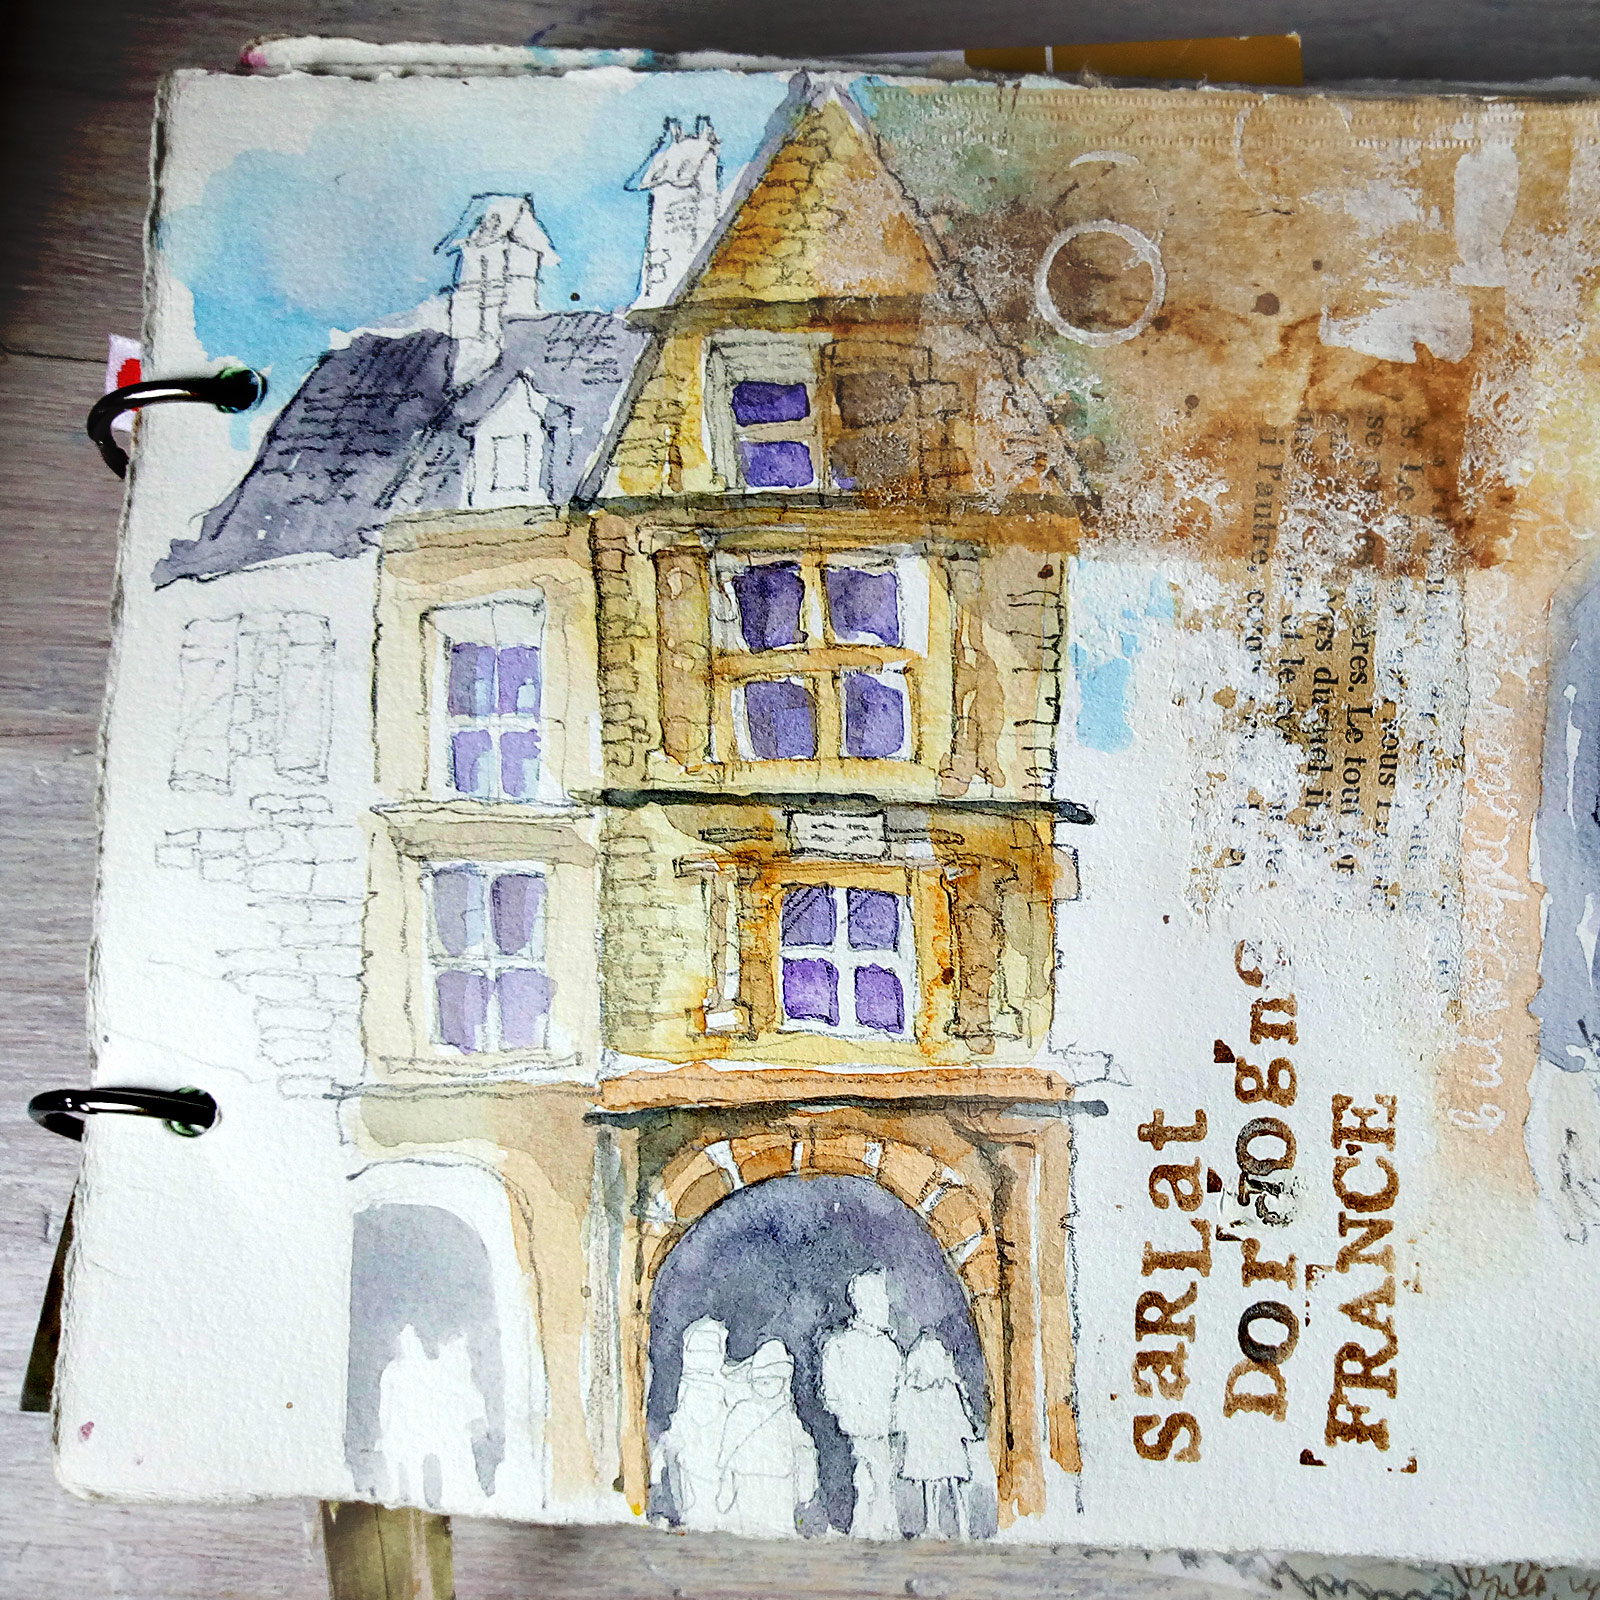 Sarlat-la-Caneda-sketchbook, house of La Boétie